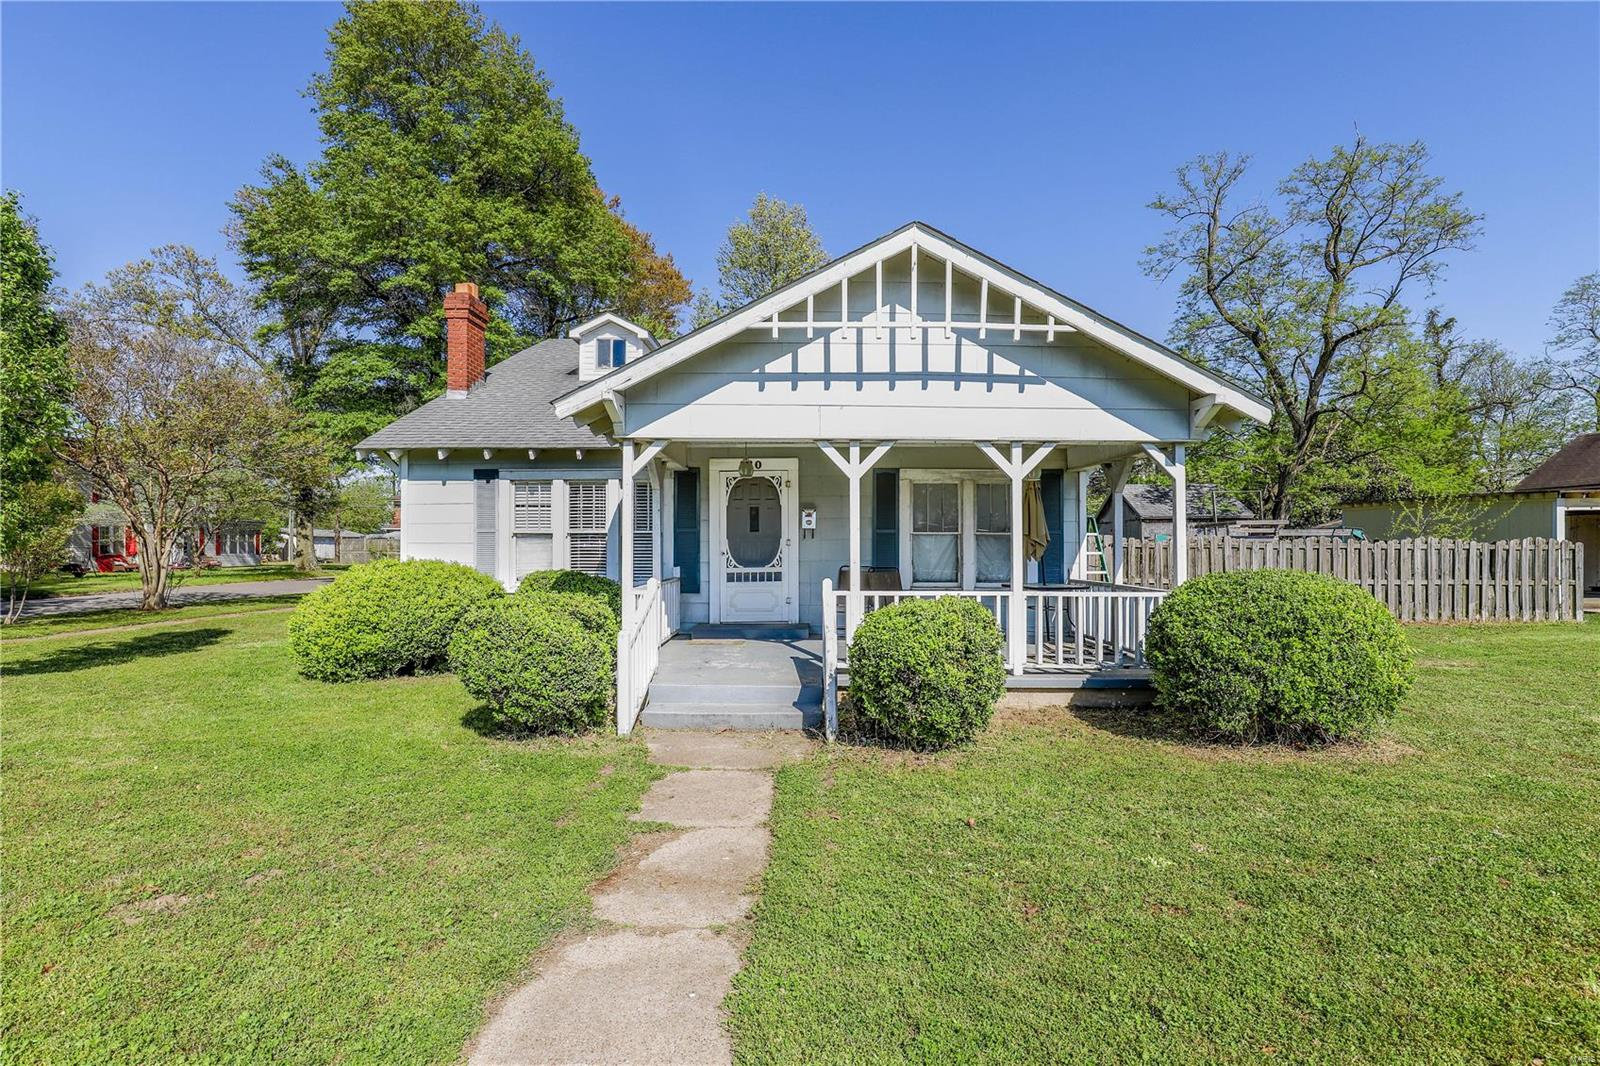 310 N Beckwith Property Photo - Malden, MO real estate listing